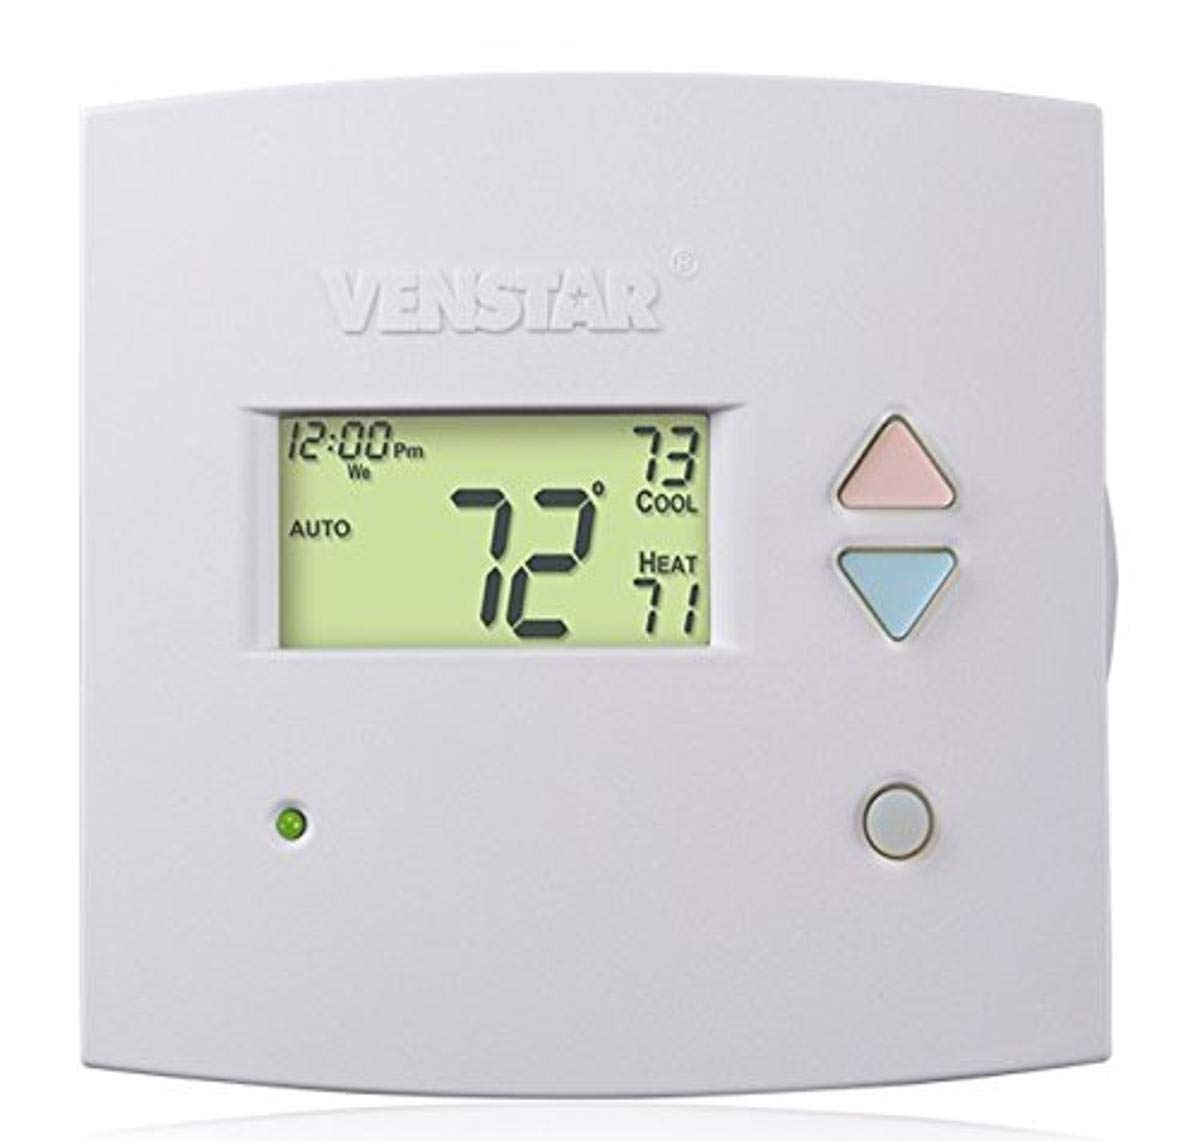 Venstar T2700 Slim Line Commercial Tulsa Mall Thermostat Non Programmable Excellence